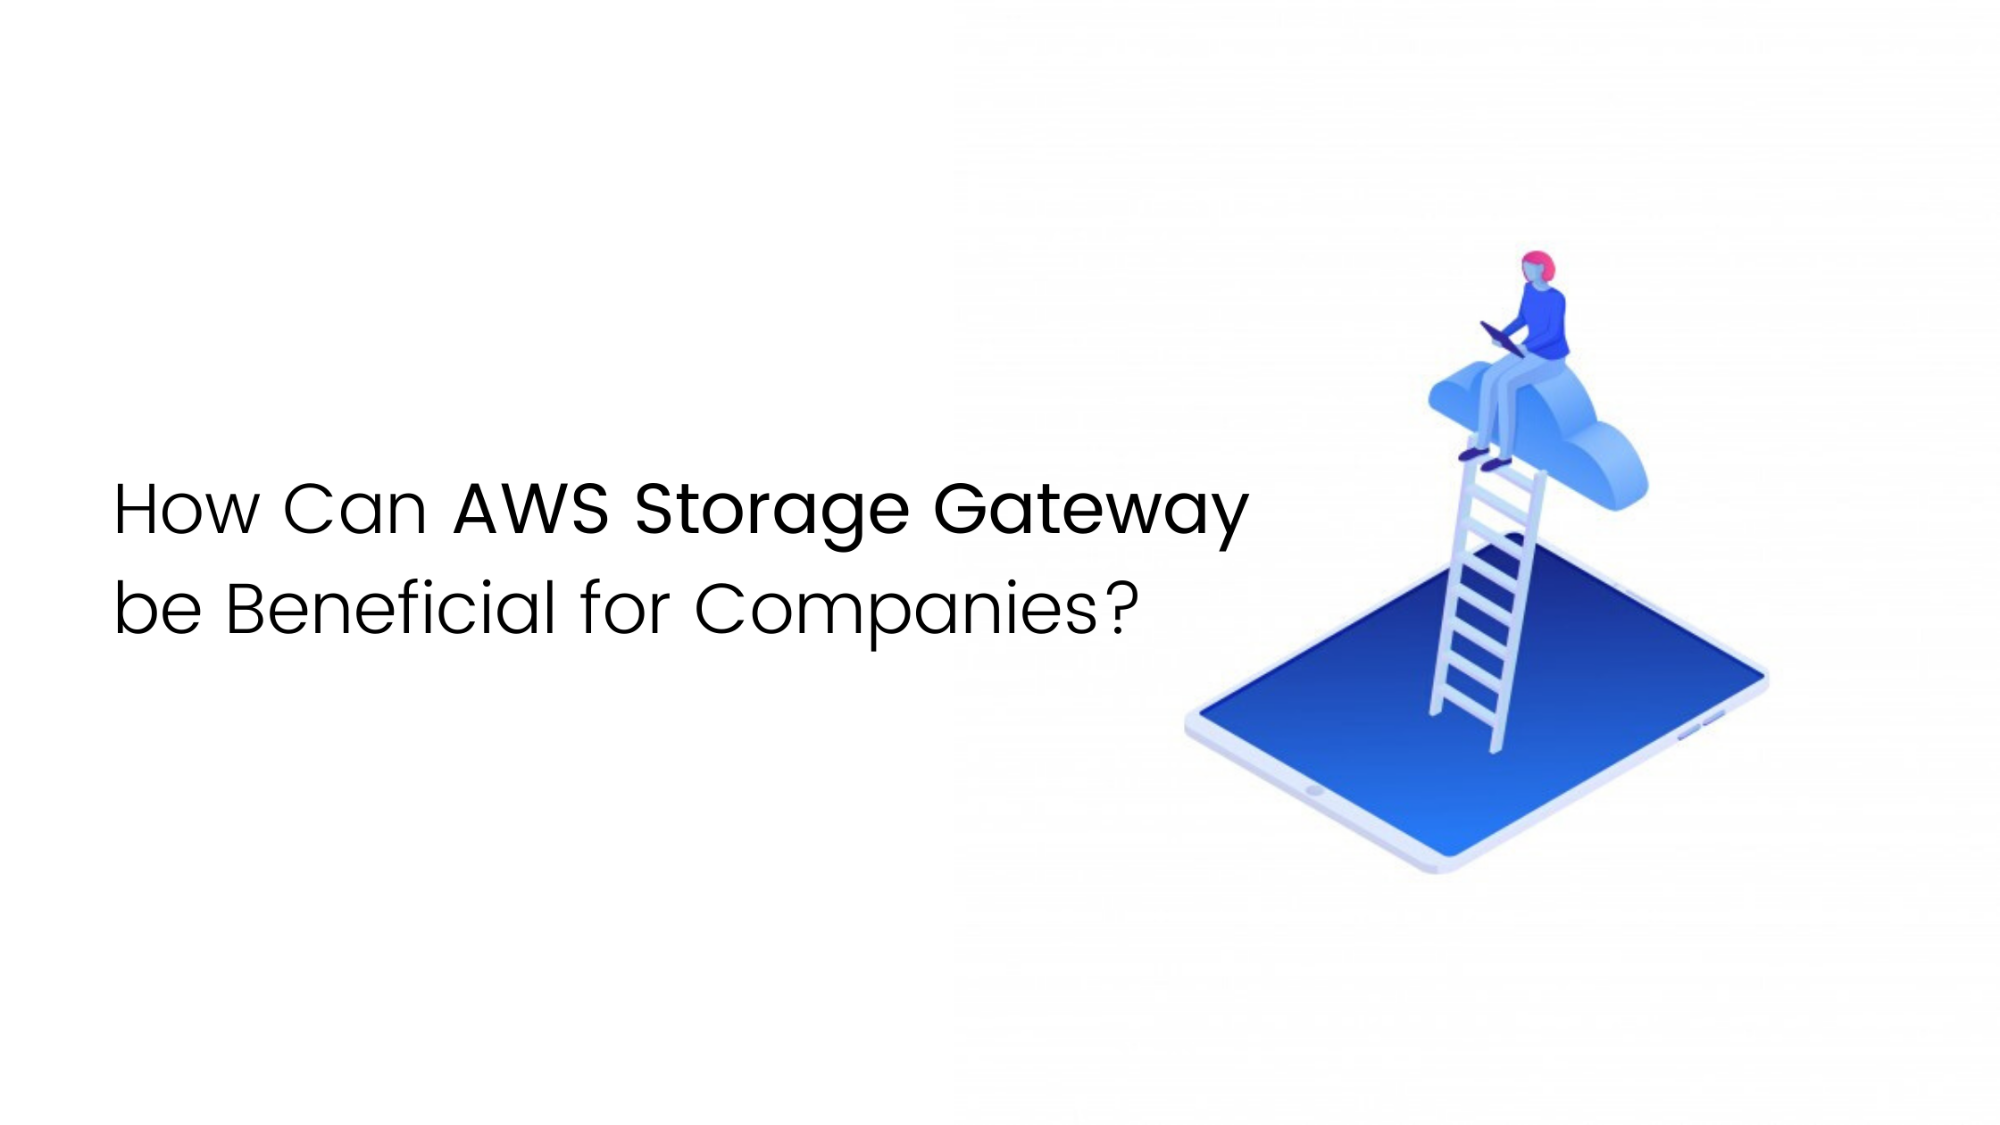 How Can AWS Storage Gateway be Beneficial for Companies?